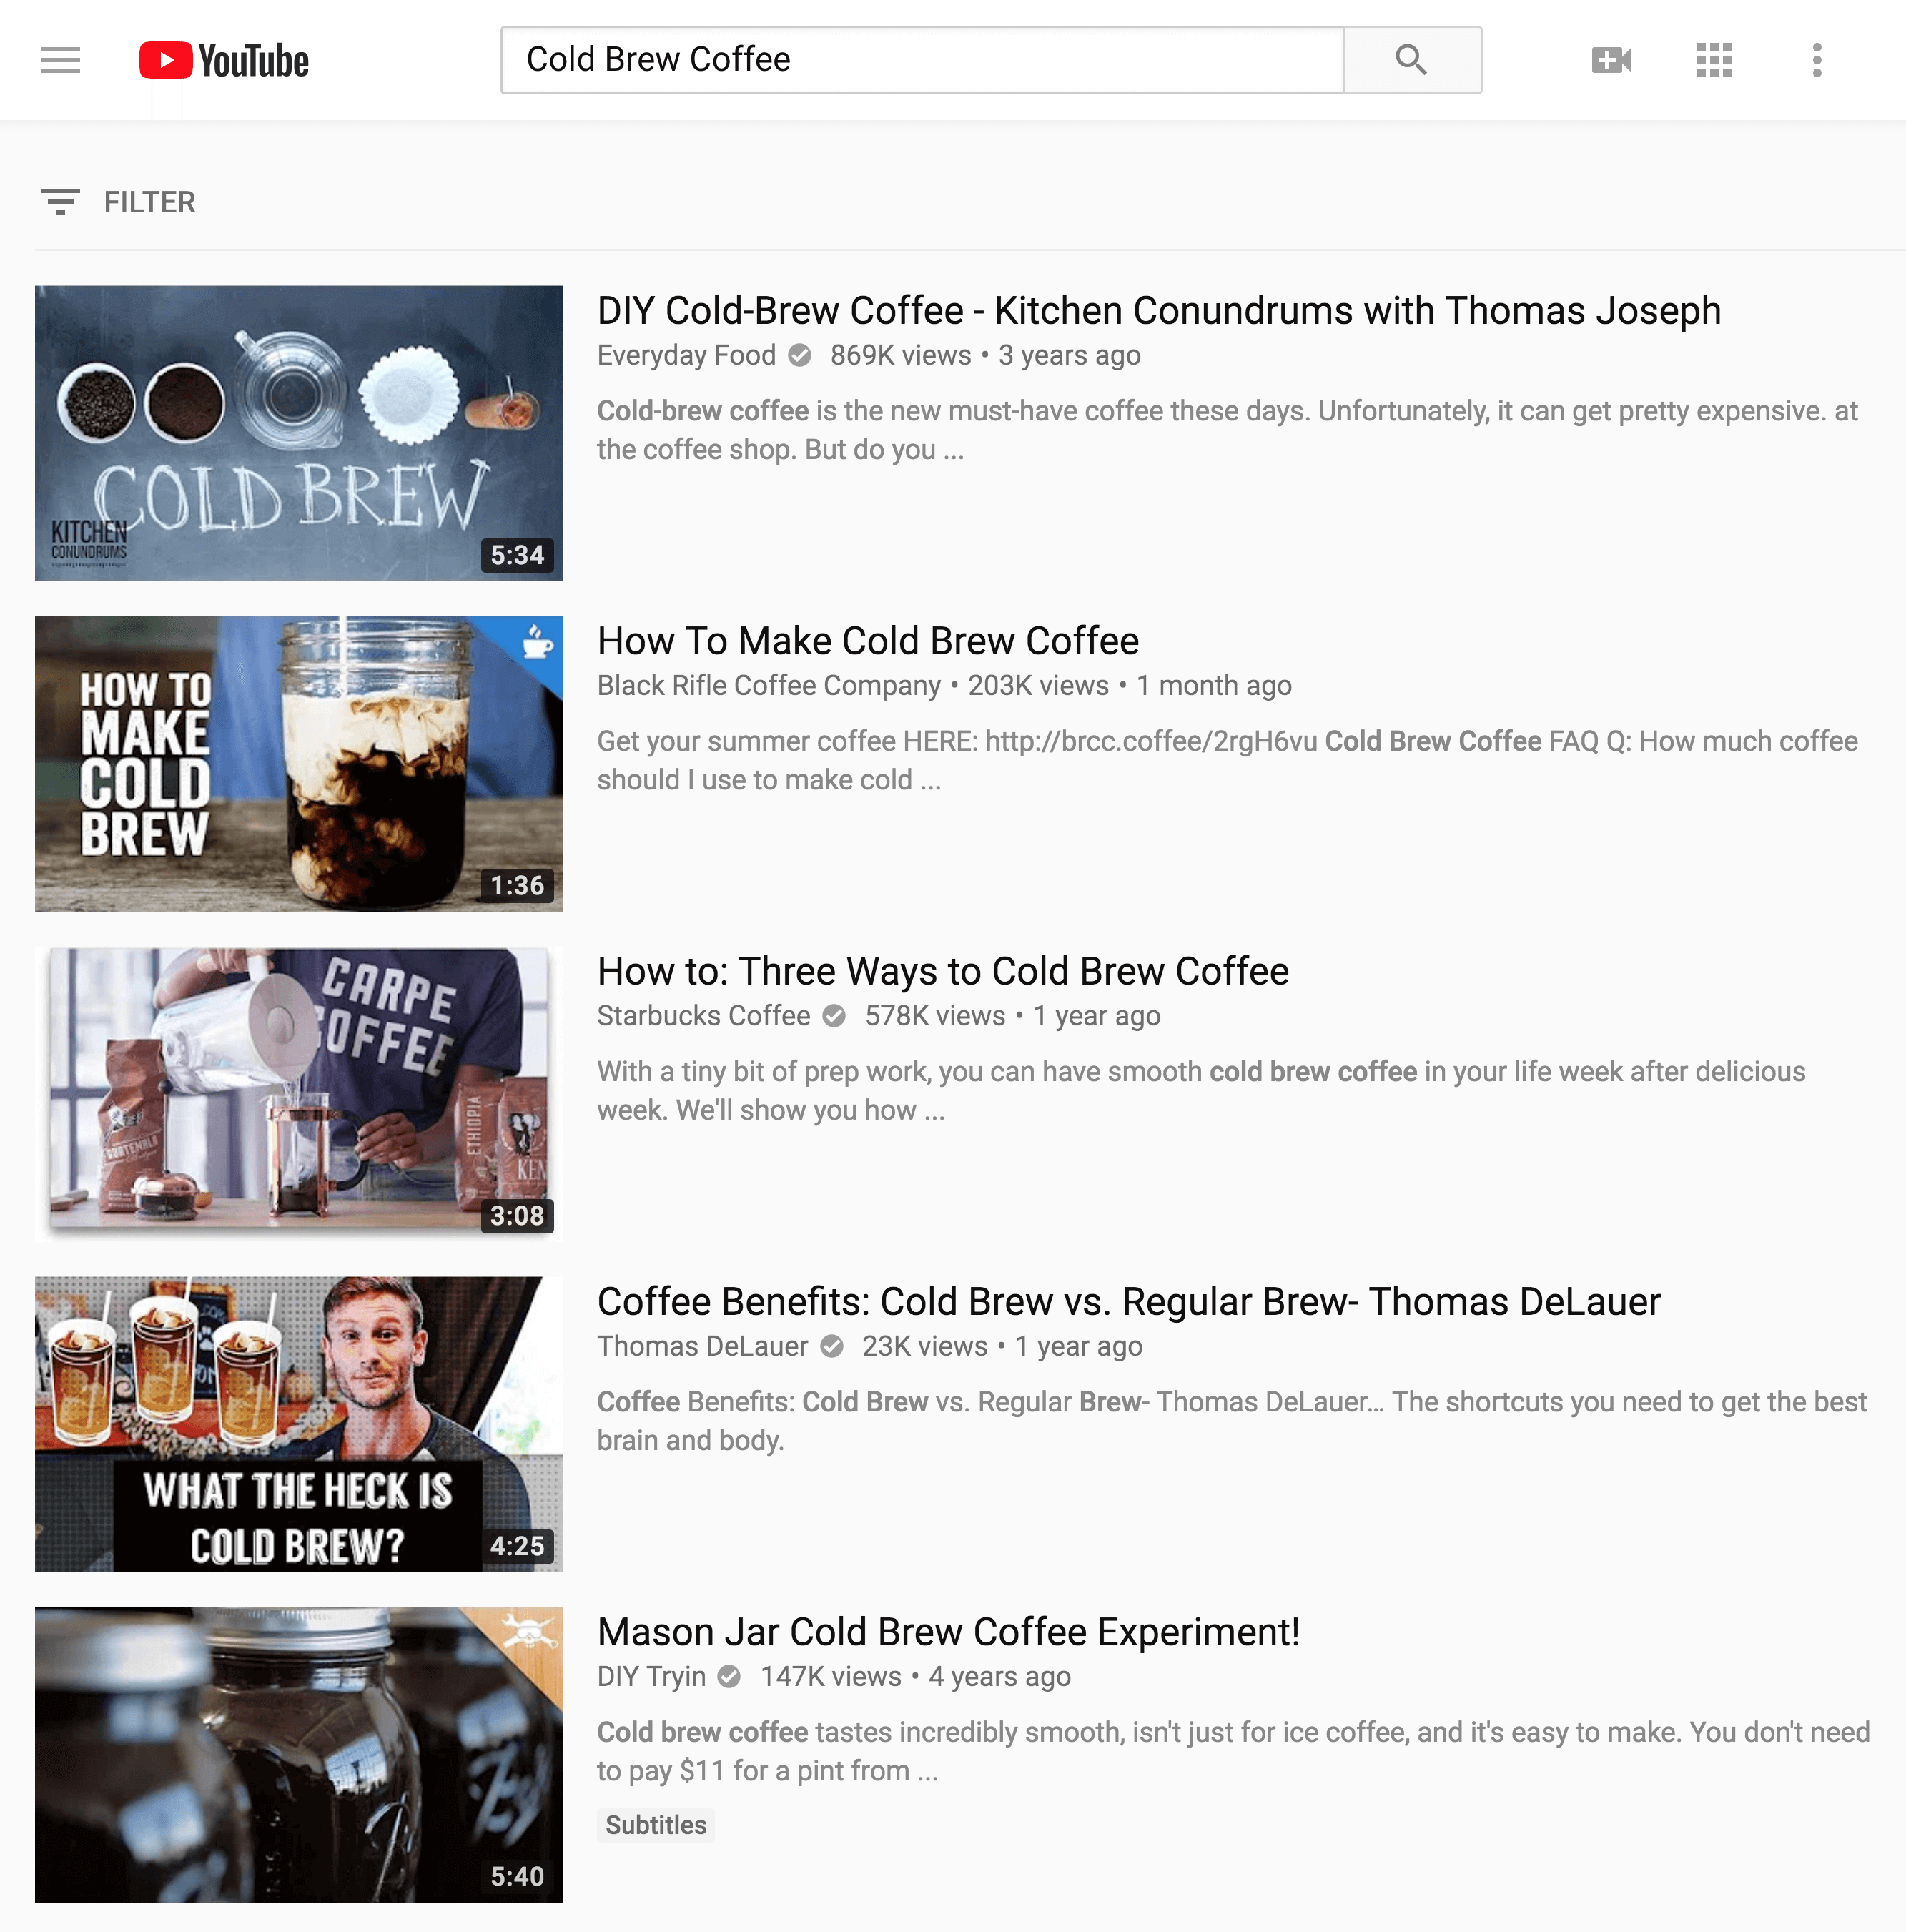 YouTube search